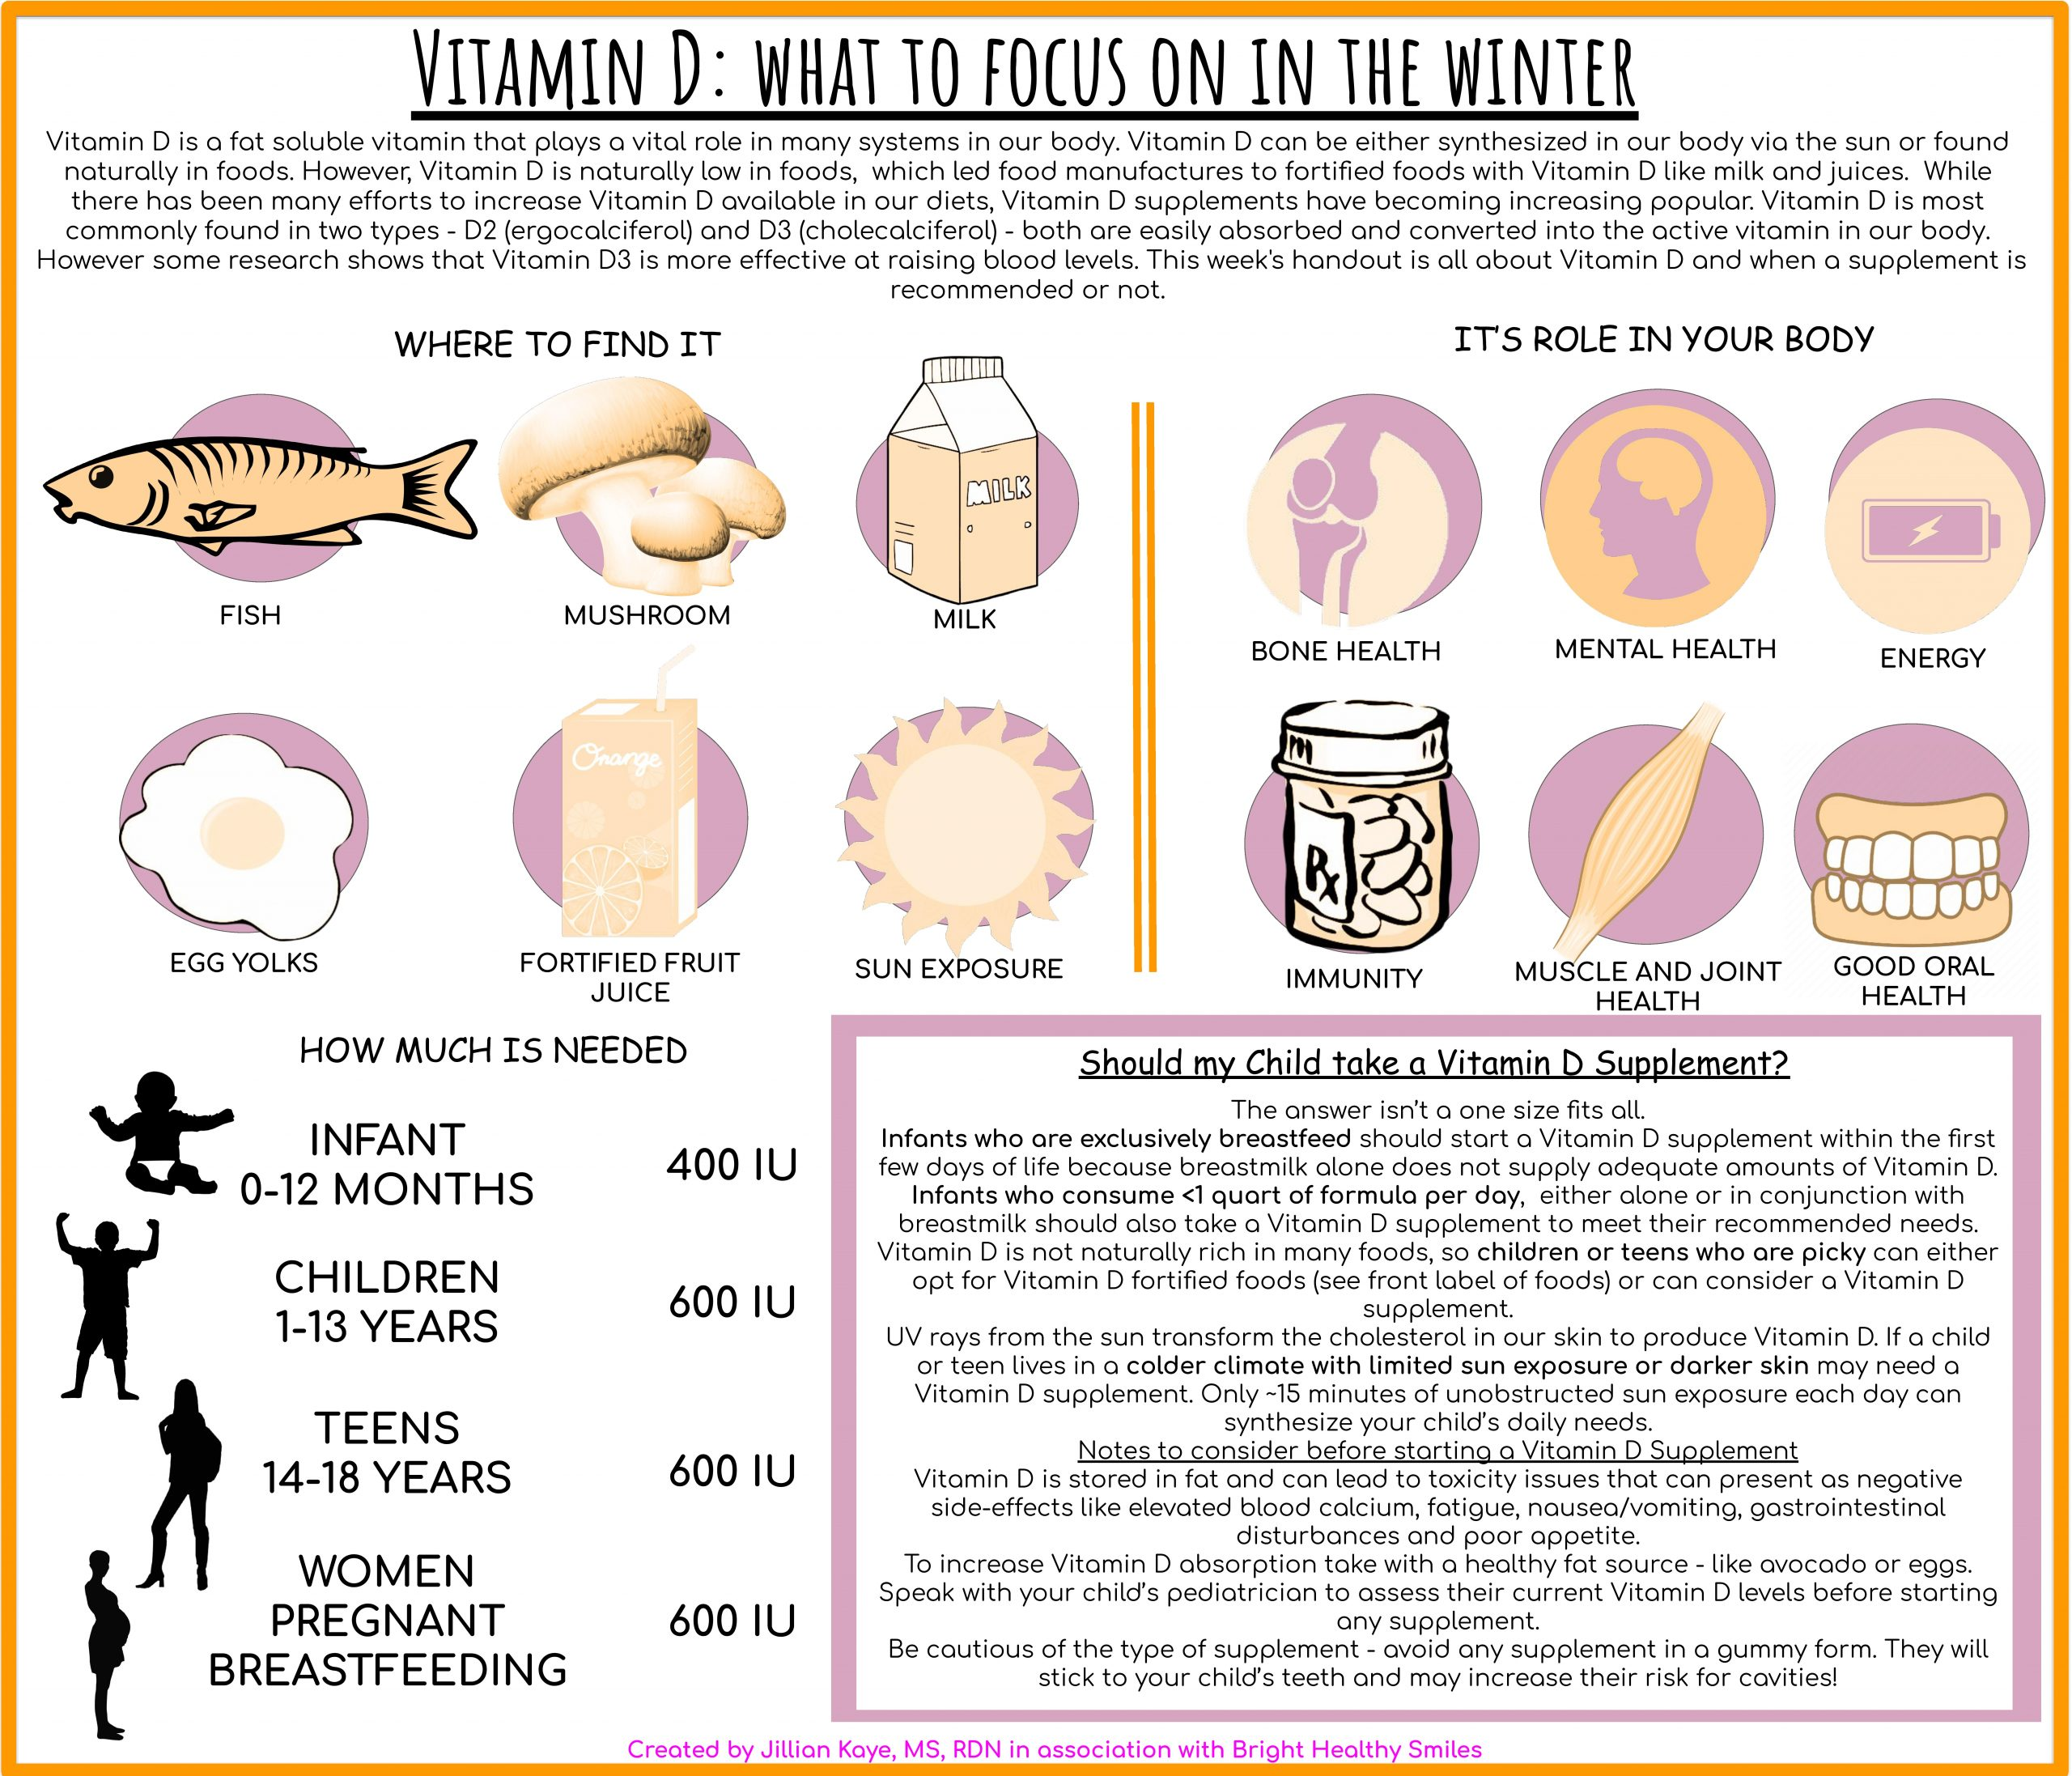 Vitamin D: What to focus on in the winter